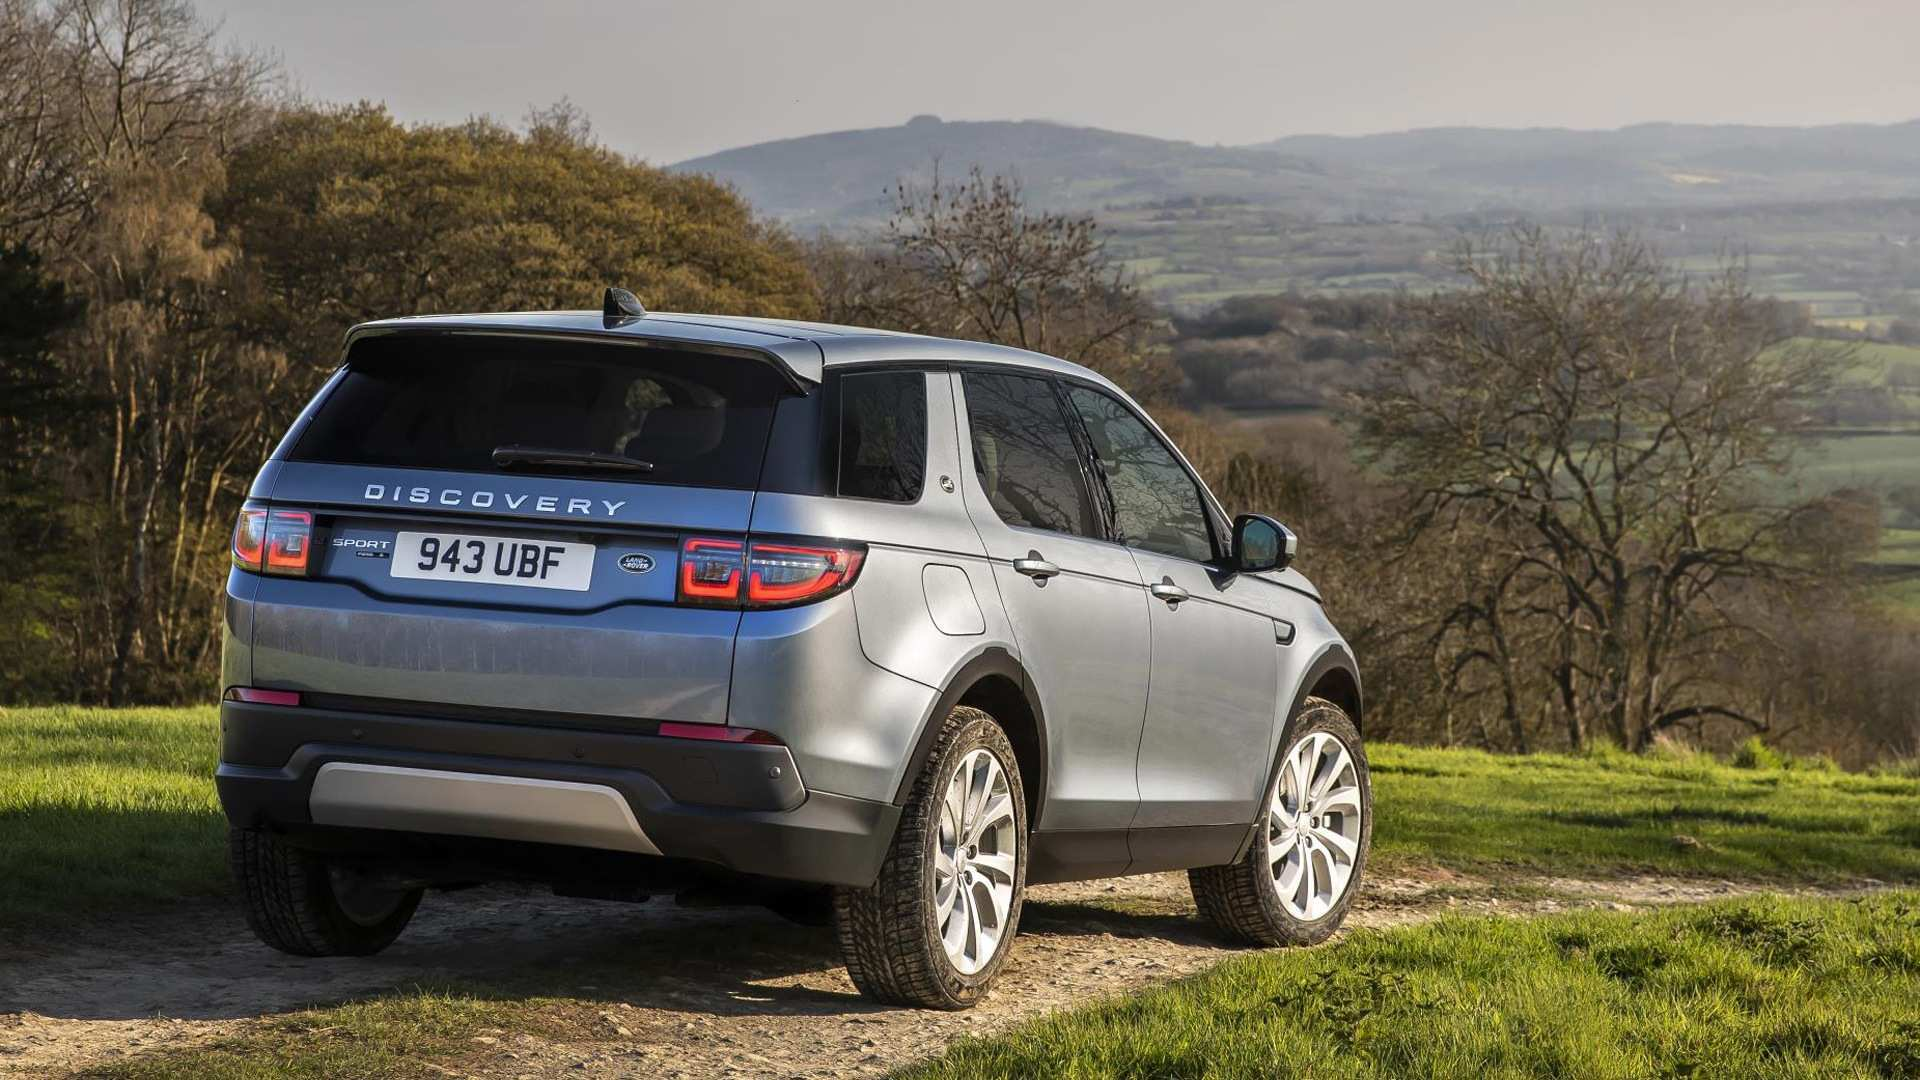 55 New 2020 Land Rover Discovery Sport Model